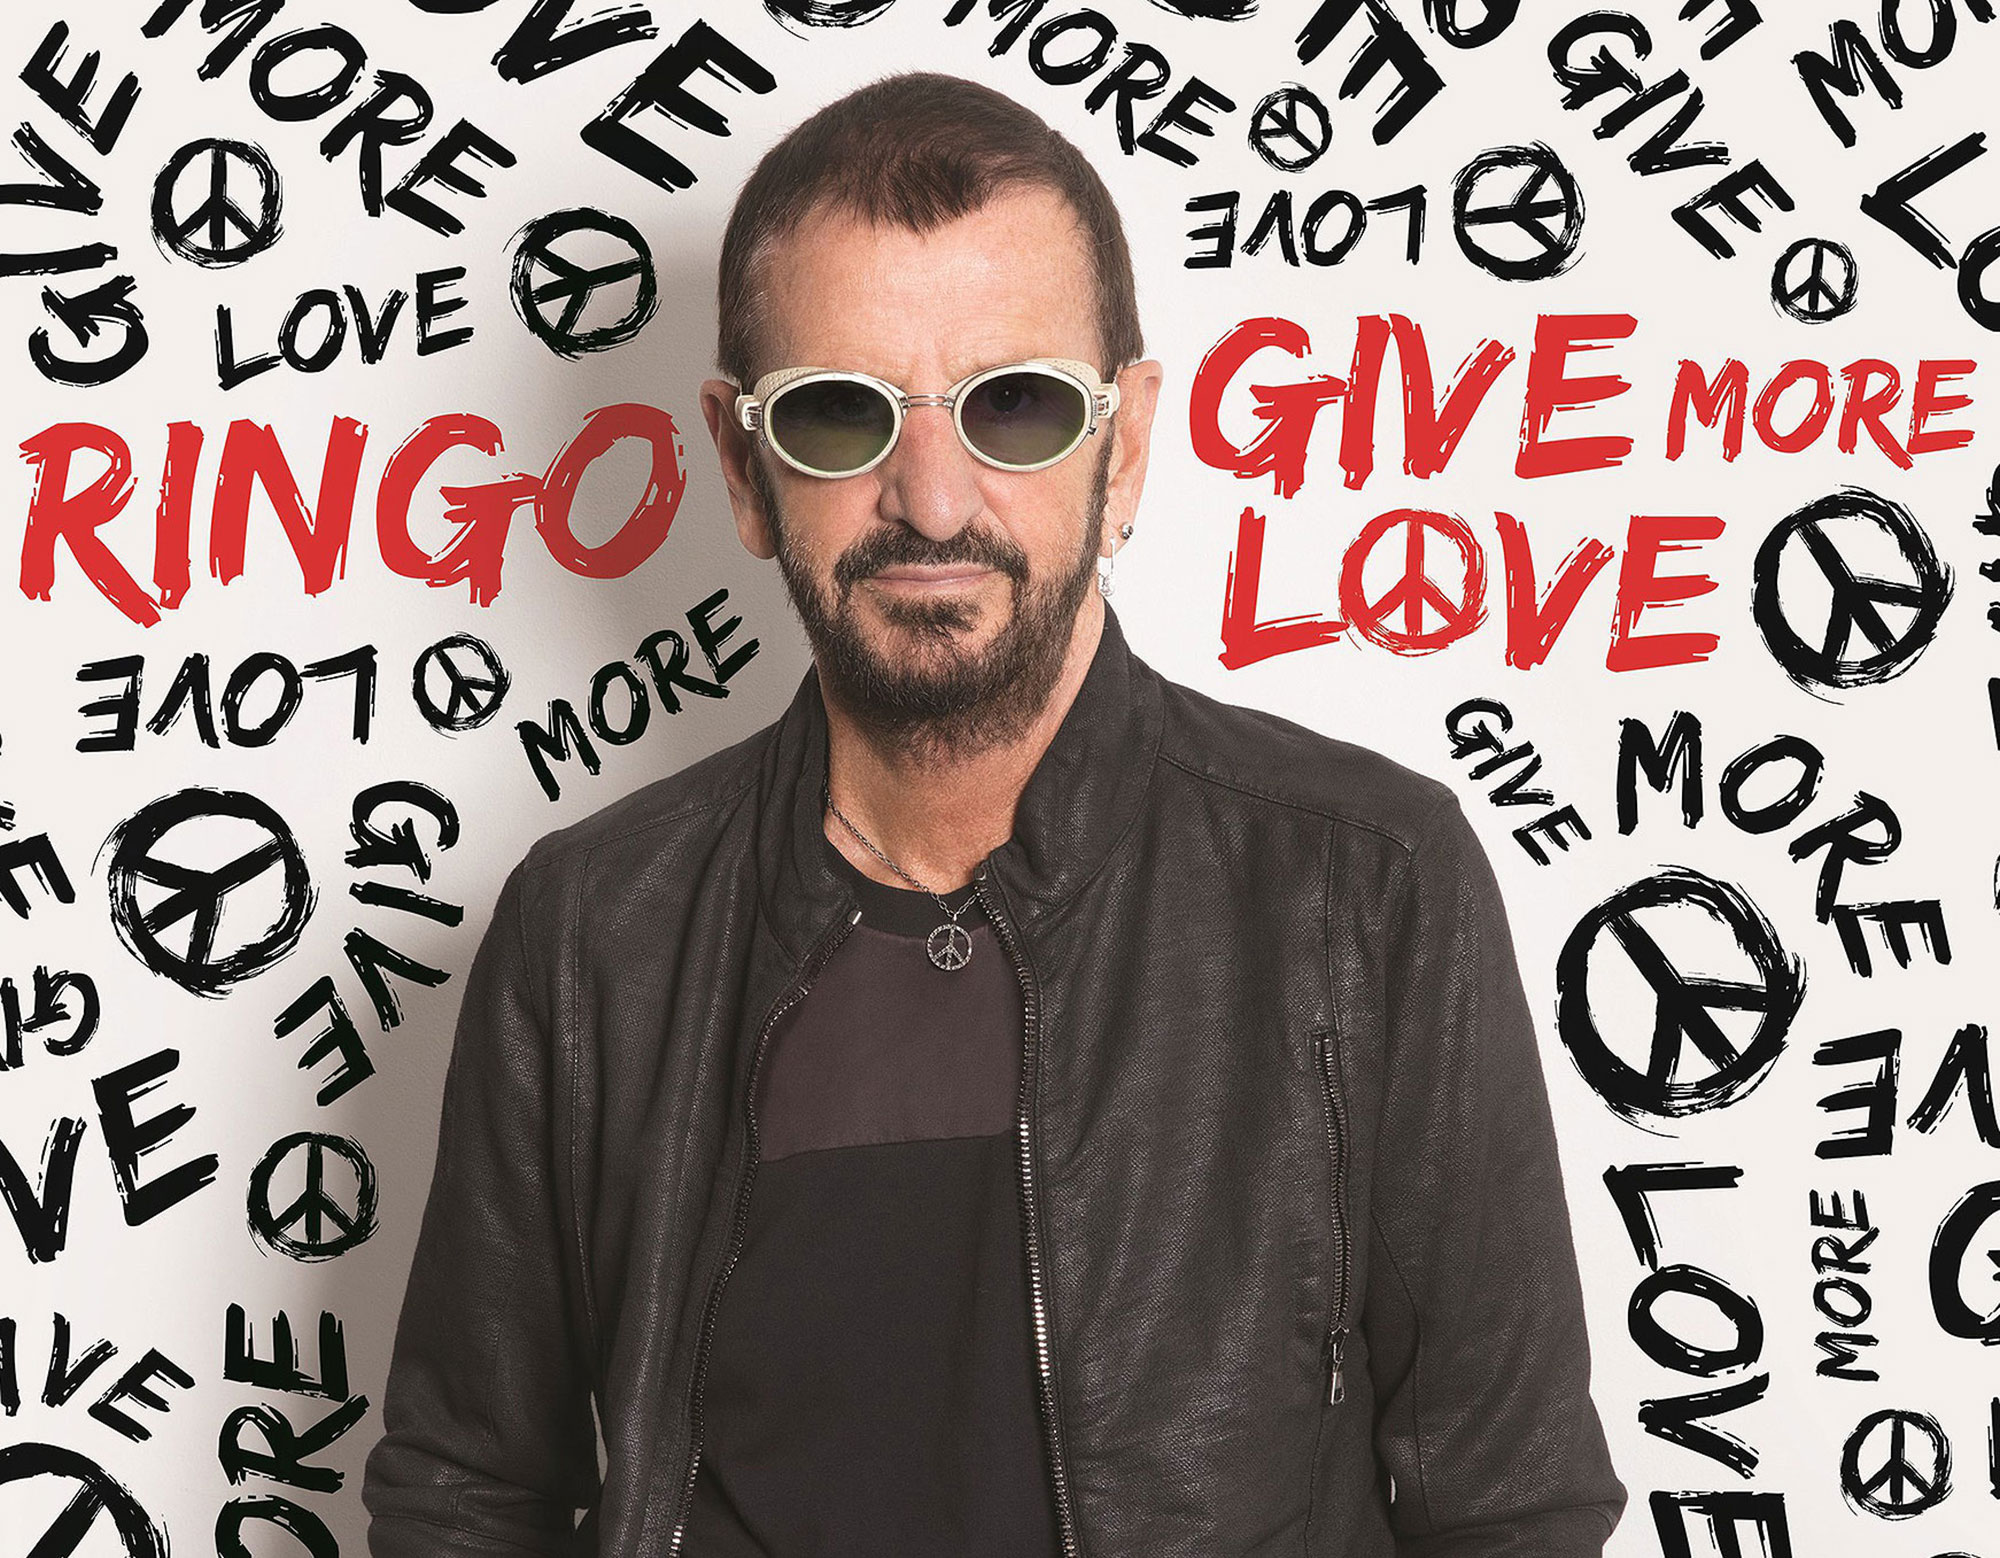 Ringo-Starr-Give-More-Love-UMe